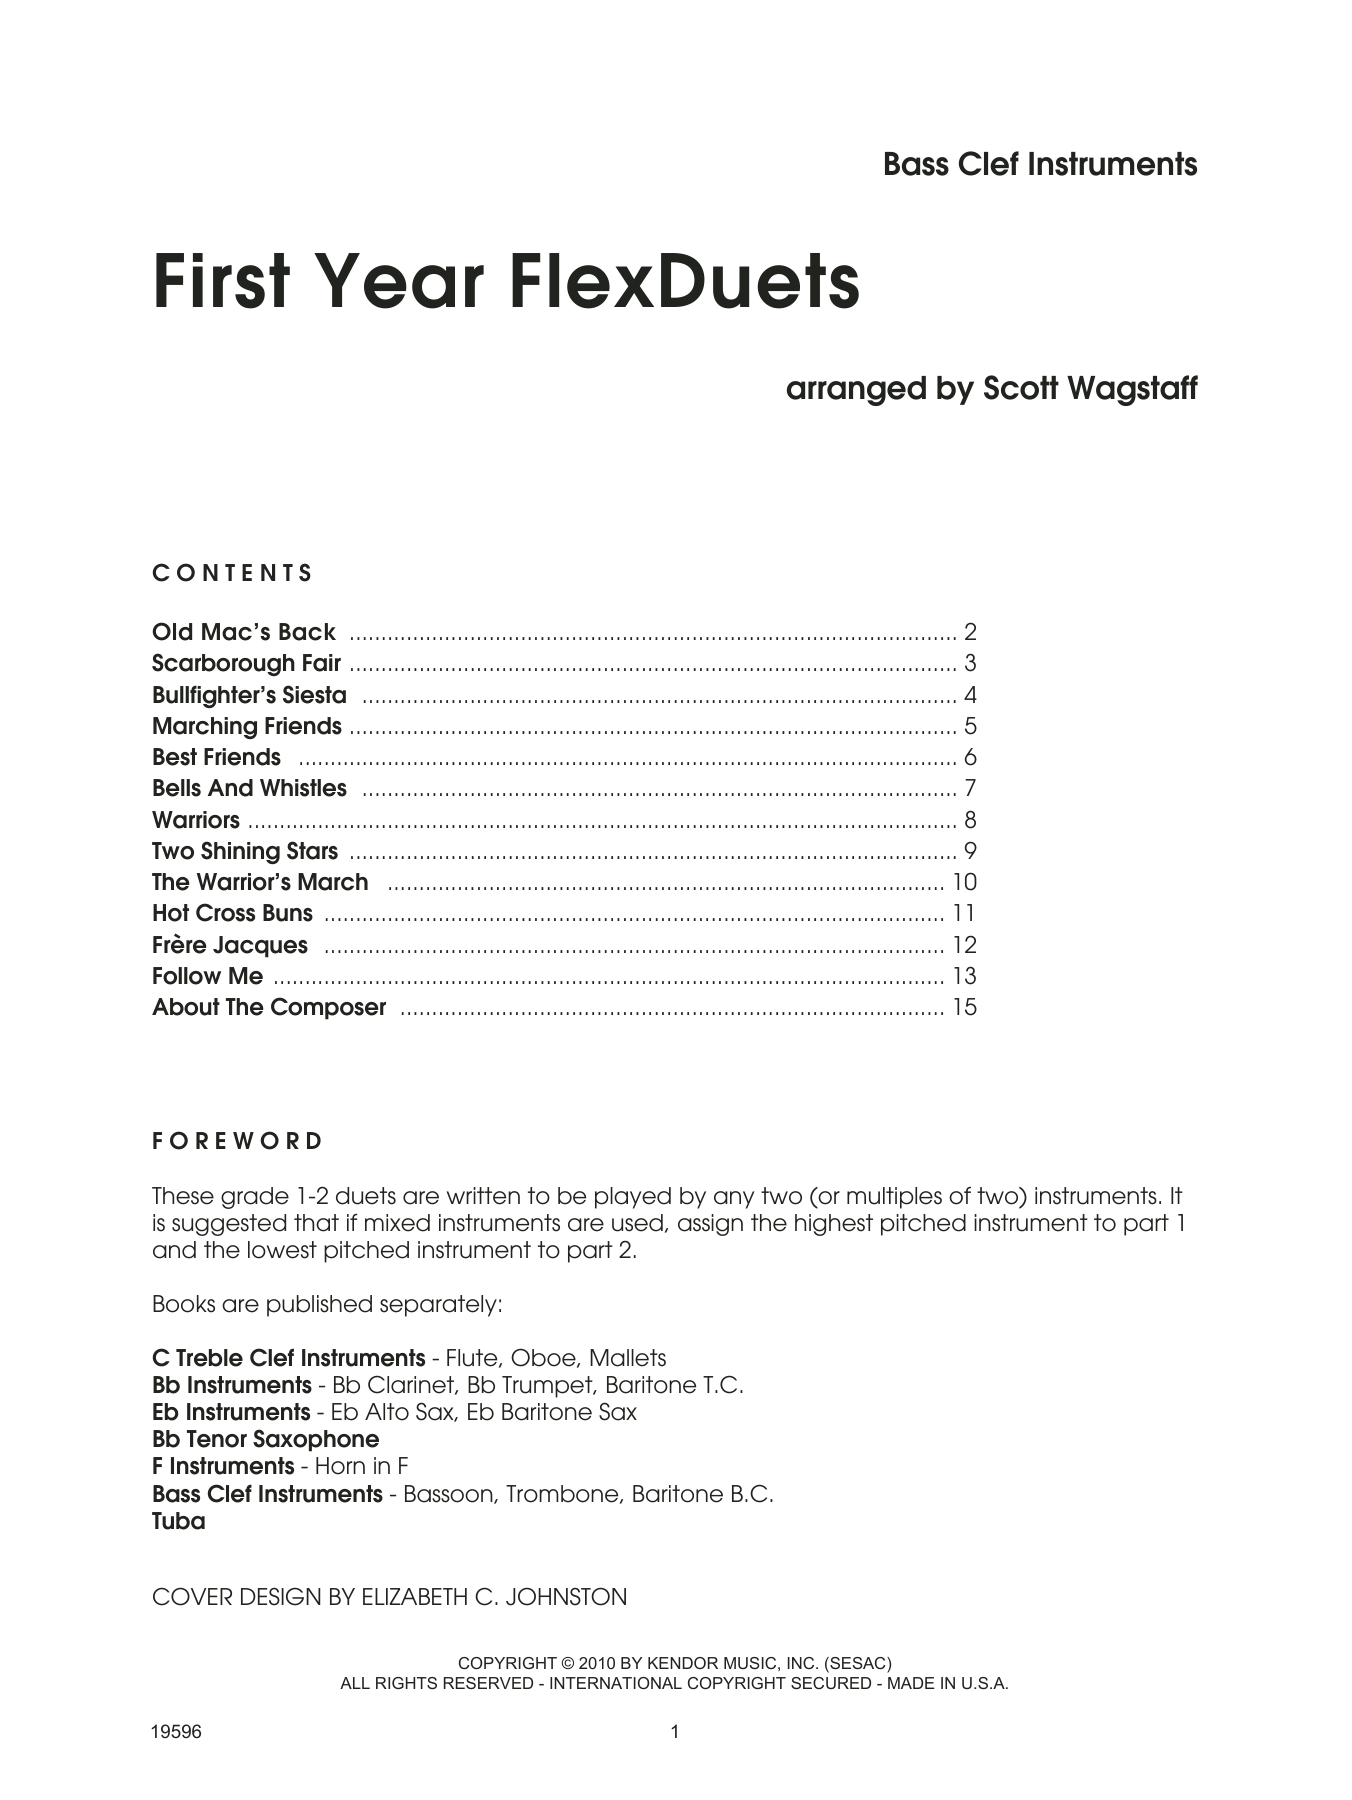 First Year FlexDuets - Bass Clef Instruments Sheet Music